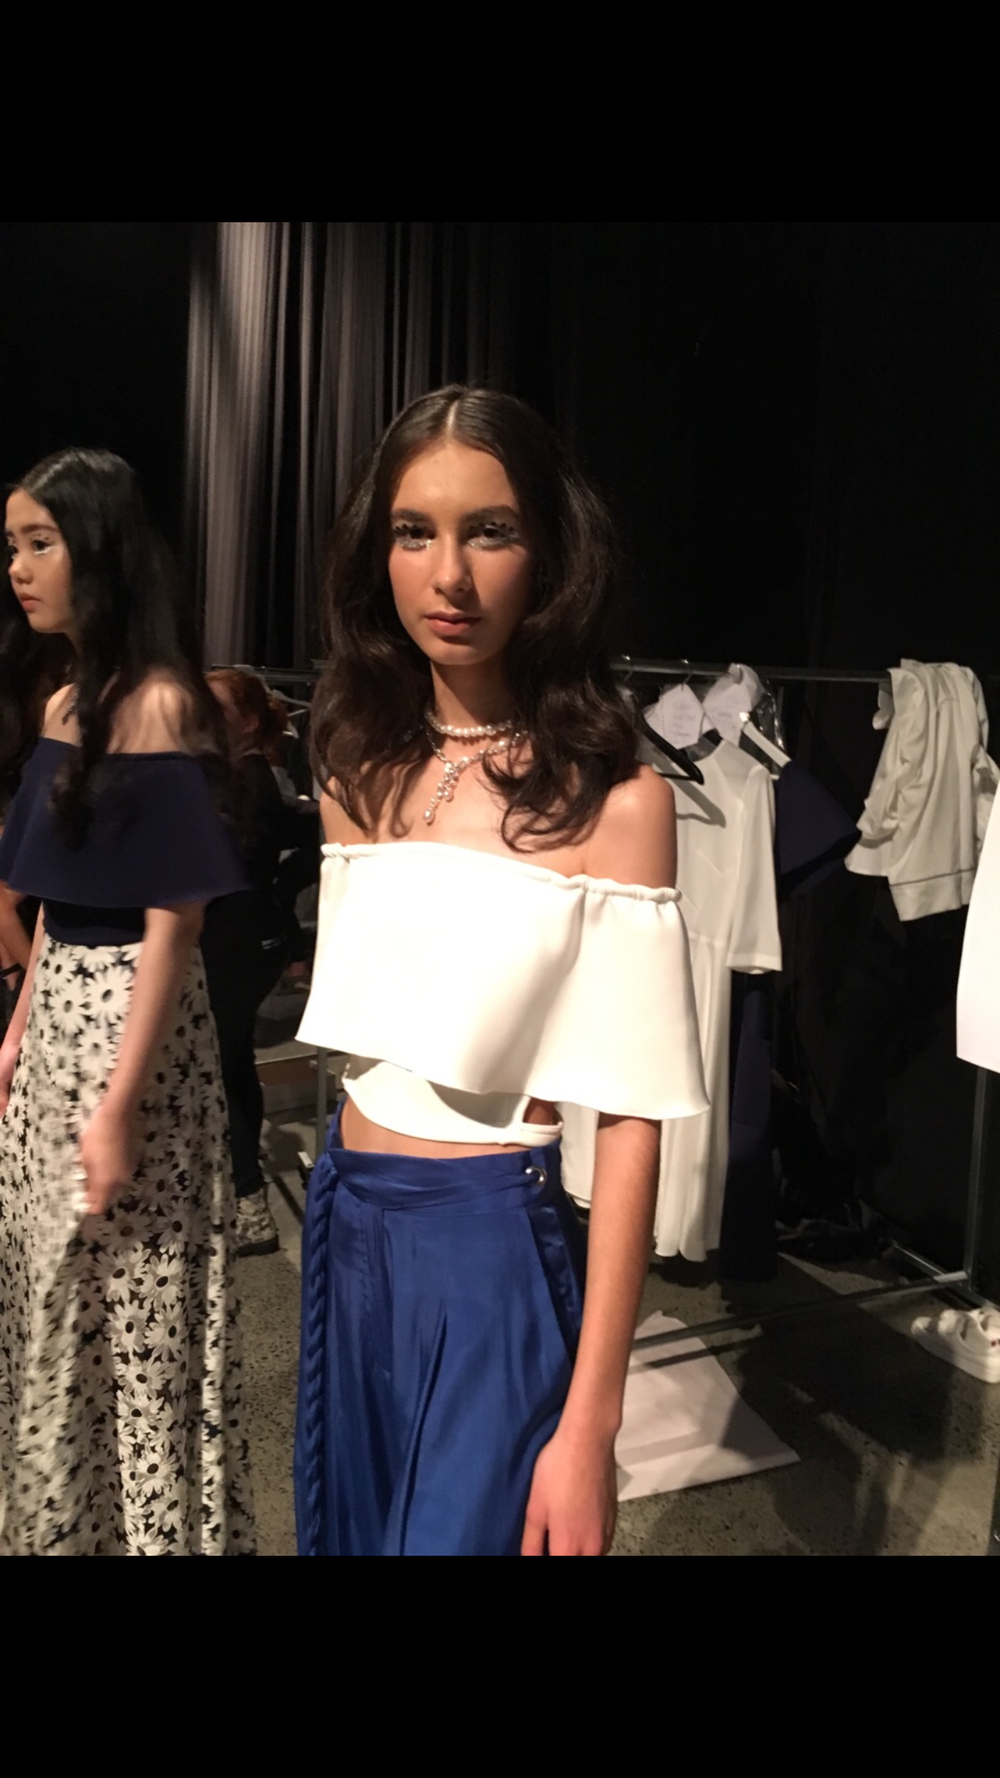 Behind the scenes at Rochelle runway show Models wearing Stella by TORY and KO Pearl Meteorite Limited Edition necklaces.png